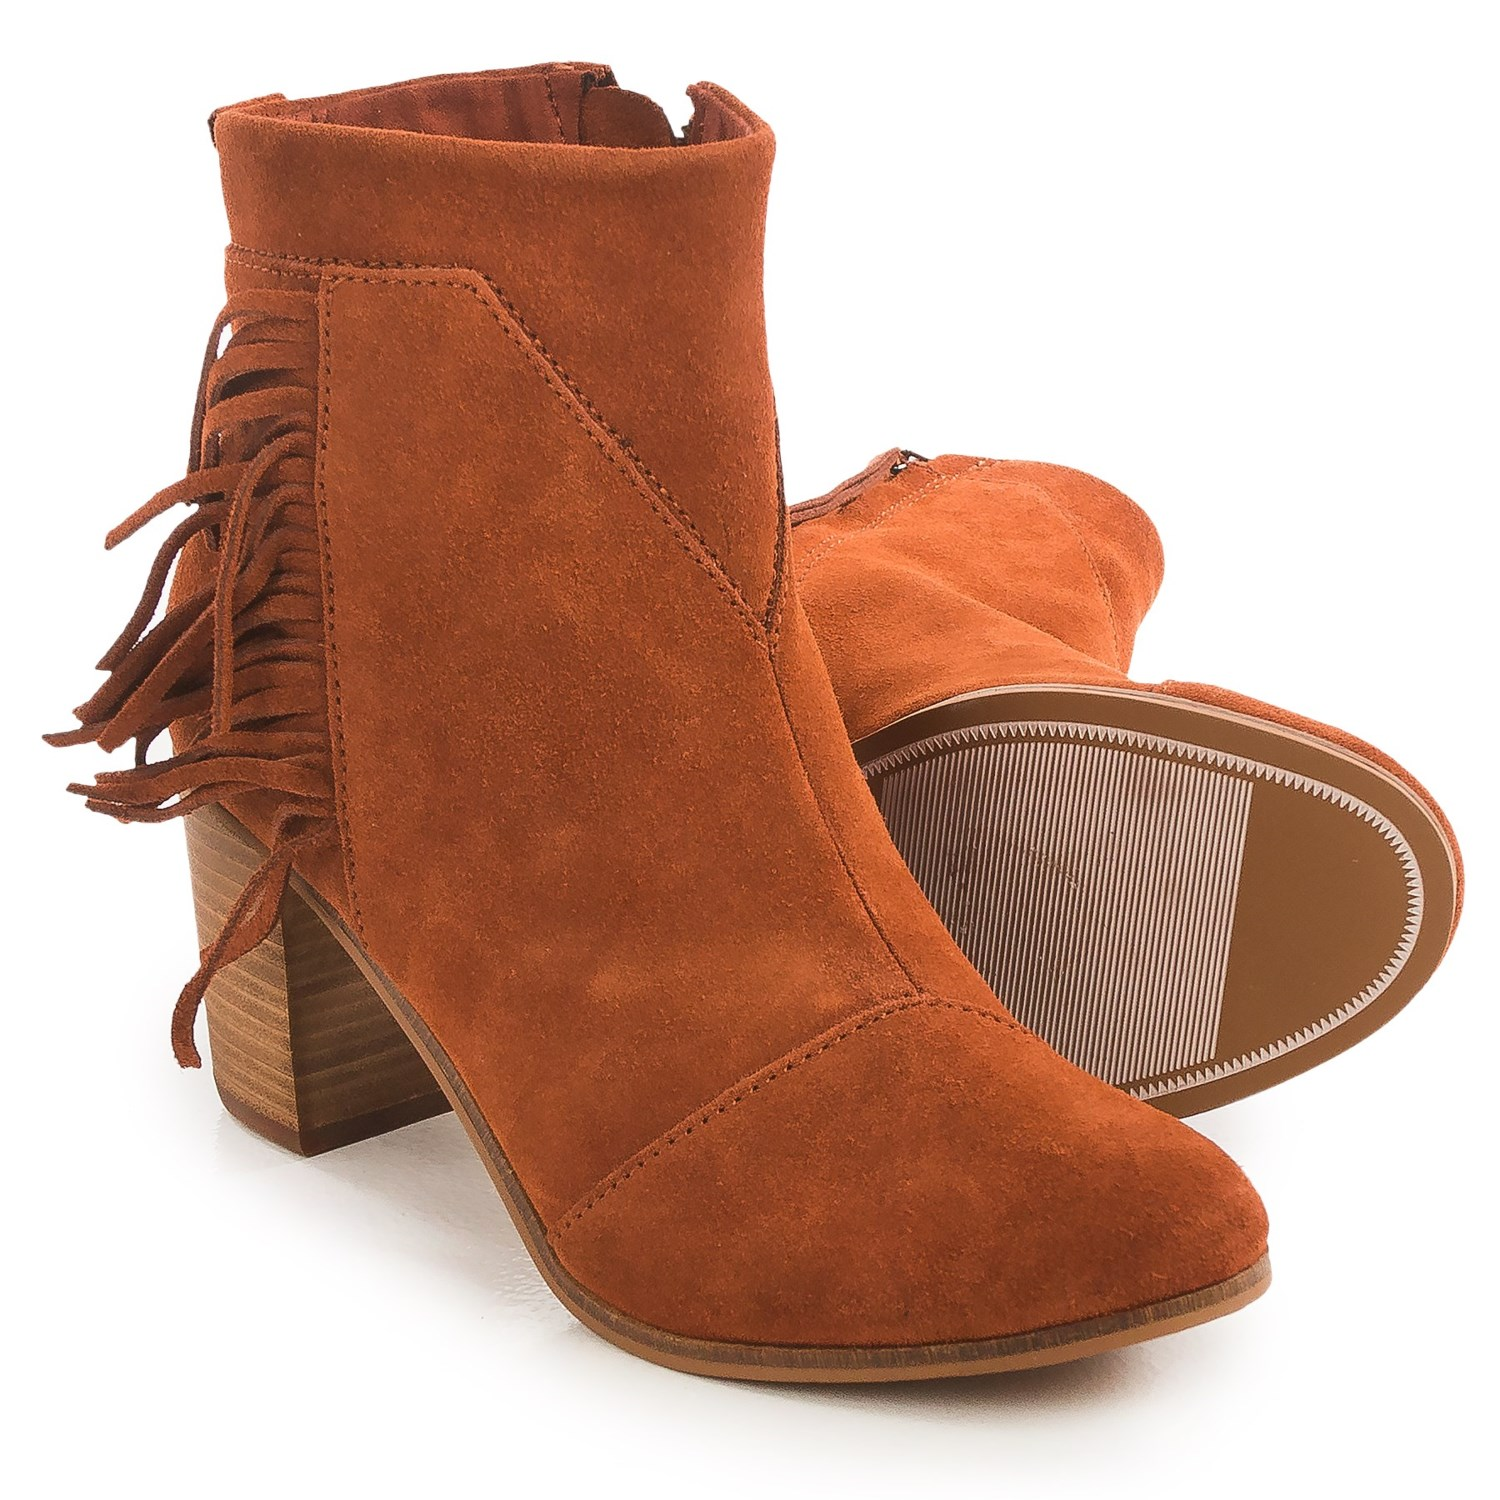 TOMS Lunata Ankle Boots (For Women)